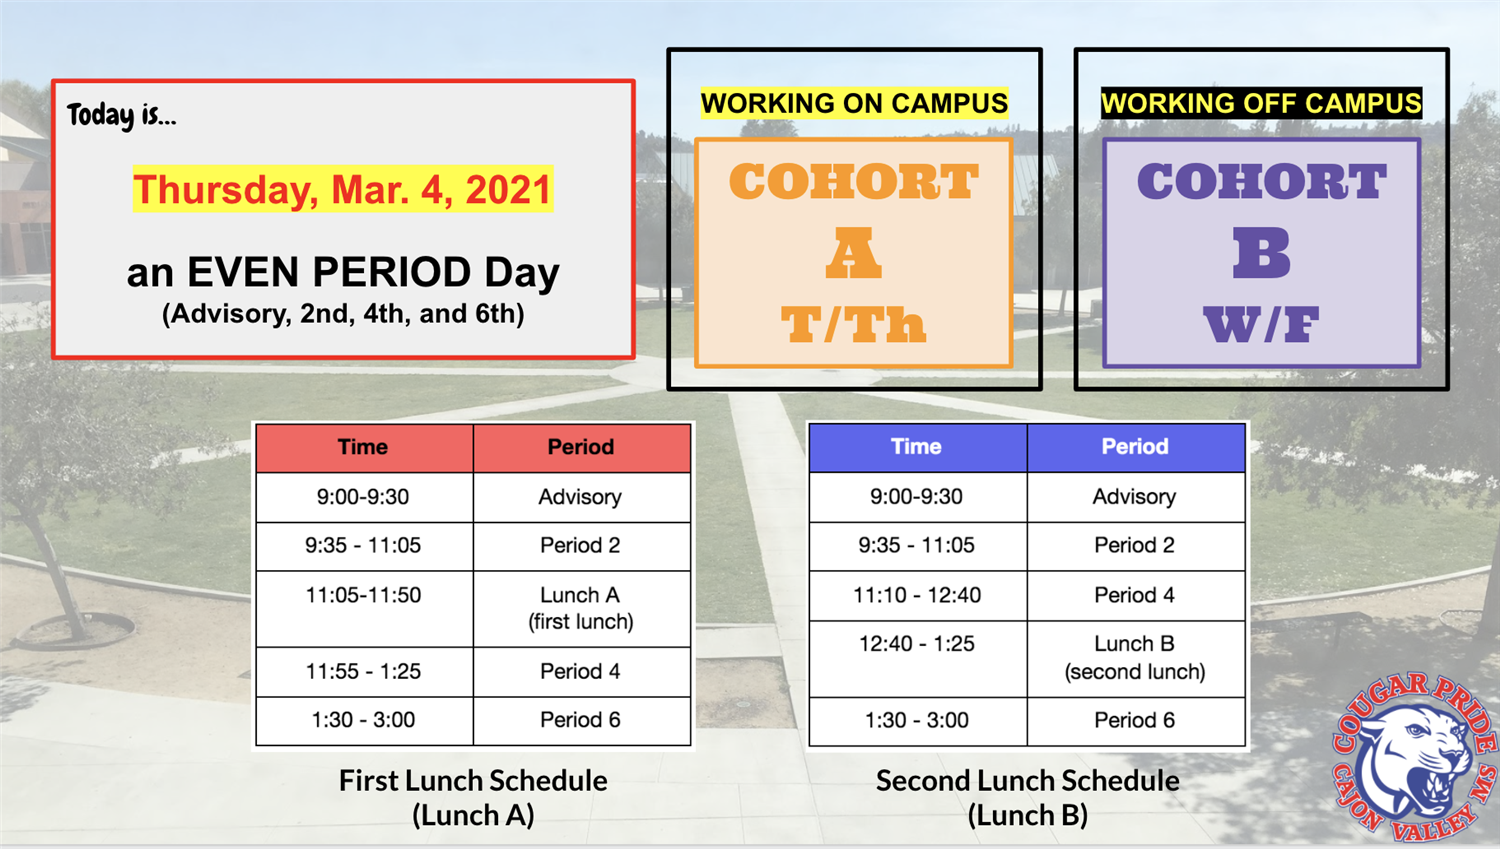 🗓Today is Thursday, March 4, 2021... Today is an EVEN PERIOD Day.  See pic for more details. #CVMScougarPRIDE 🐾